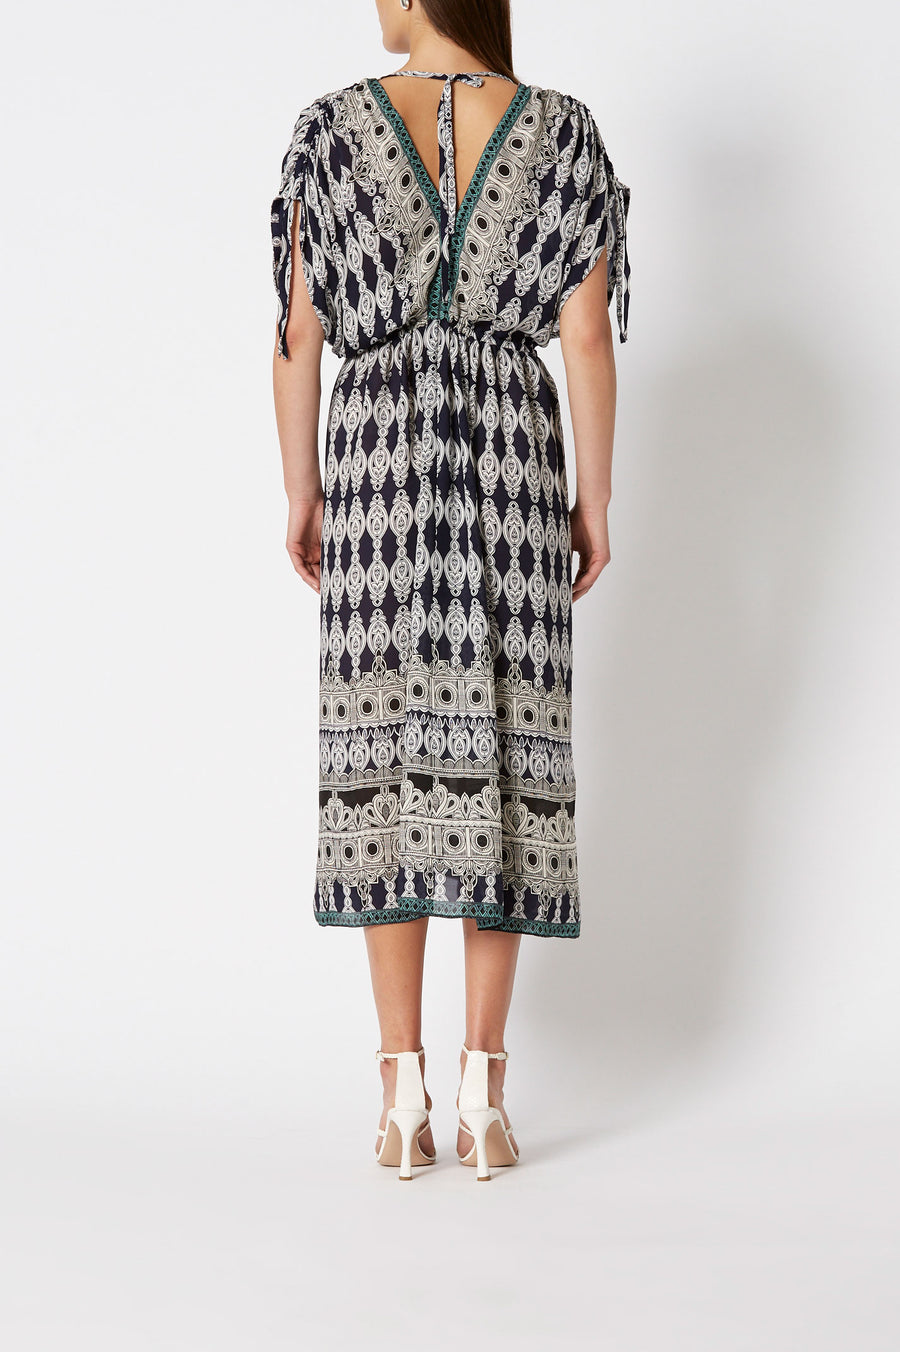 Silk GGT Marrakech Print Dress Navy,  below the knee length , v-neckline, adjustable cap sleeves